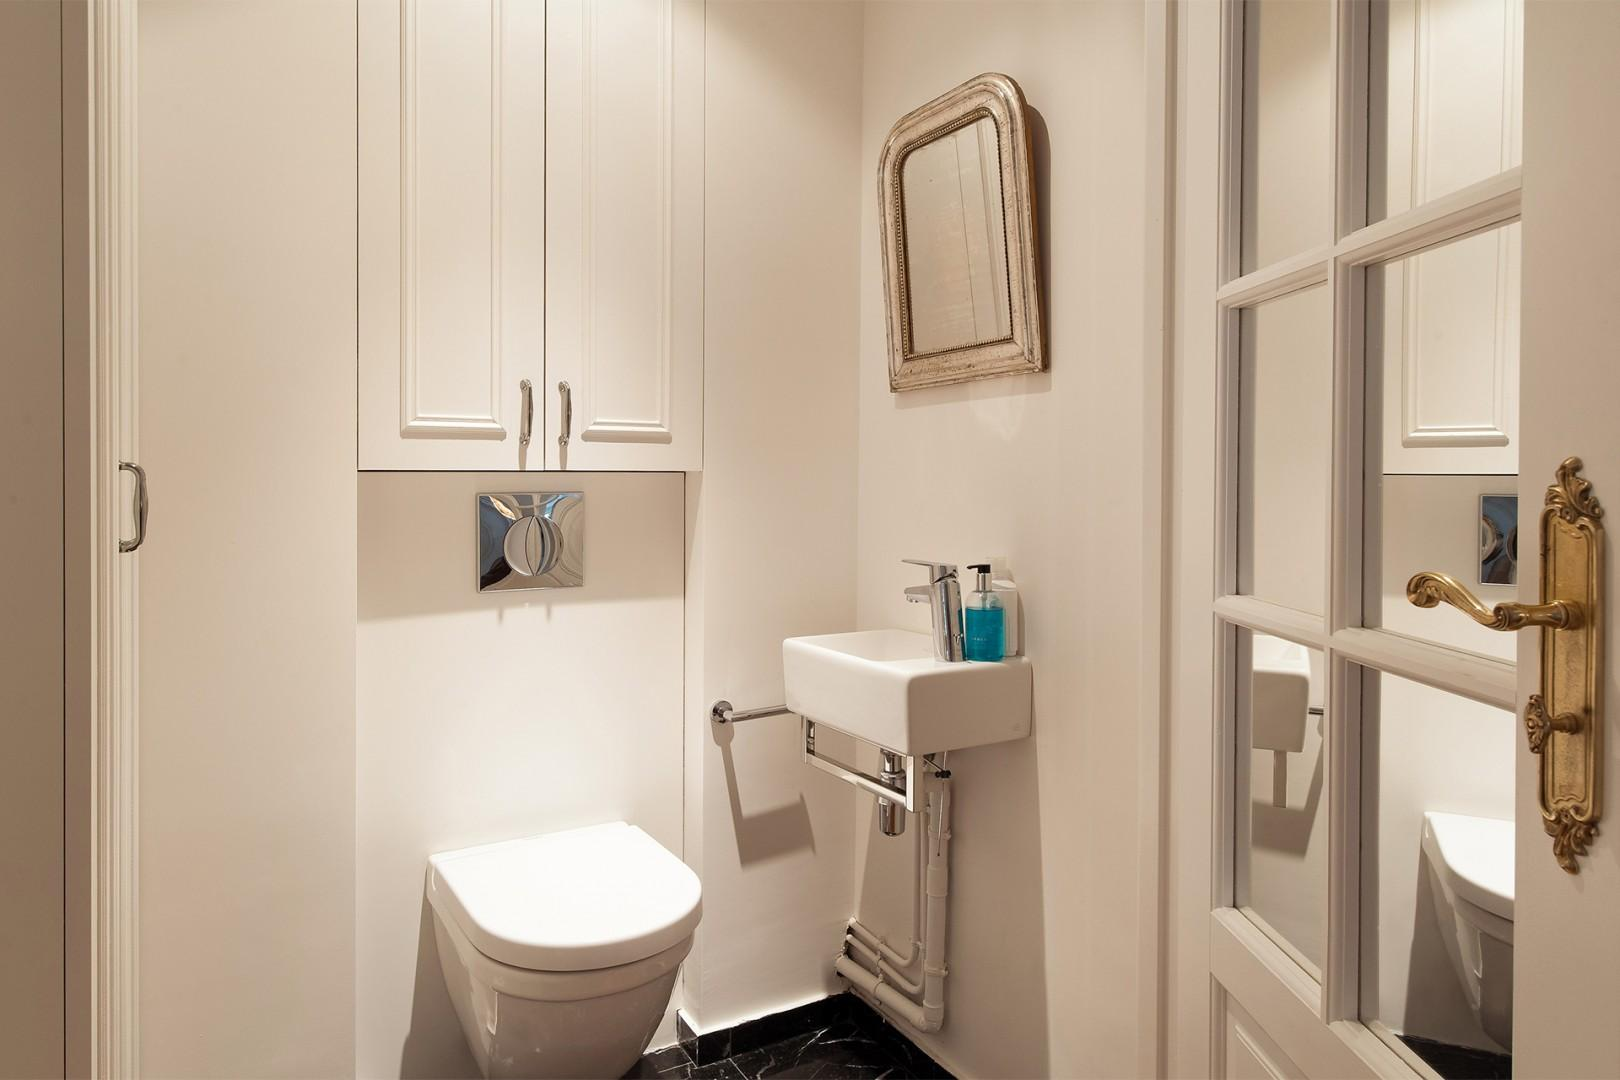 The separate half bath has a toilet and sink.